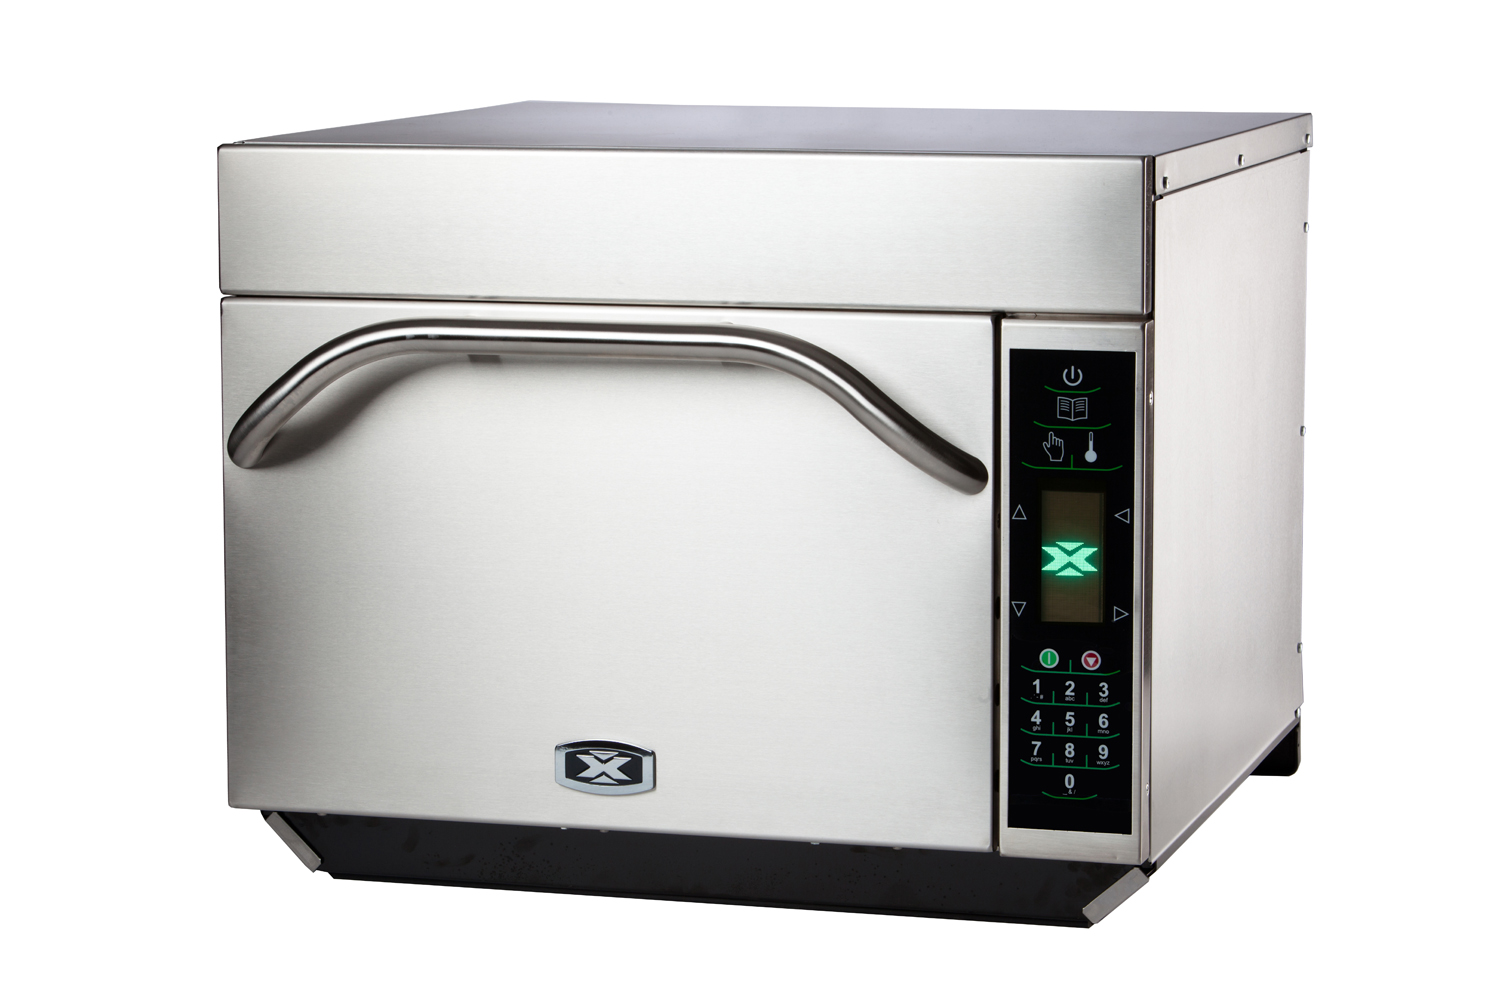 Commercial Microwave Oven Amana Mxp22 Convection Infrared